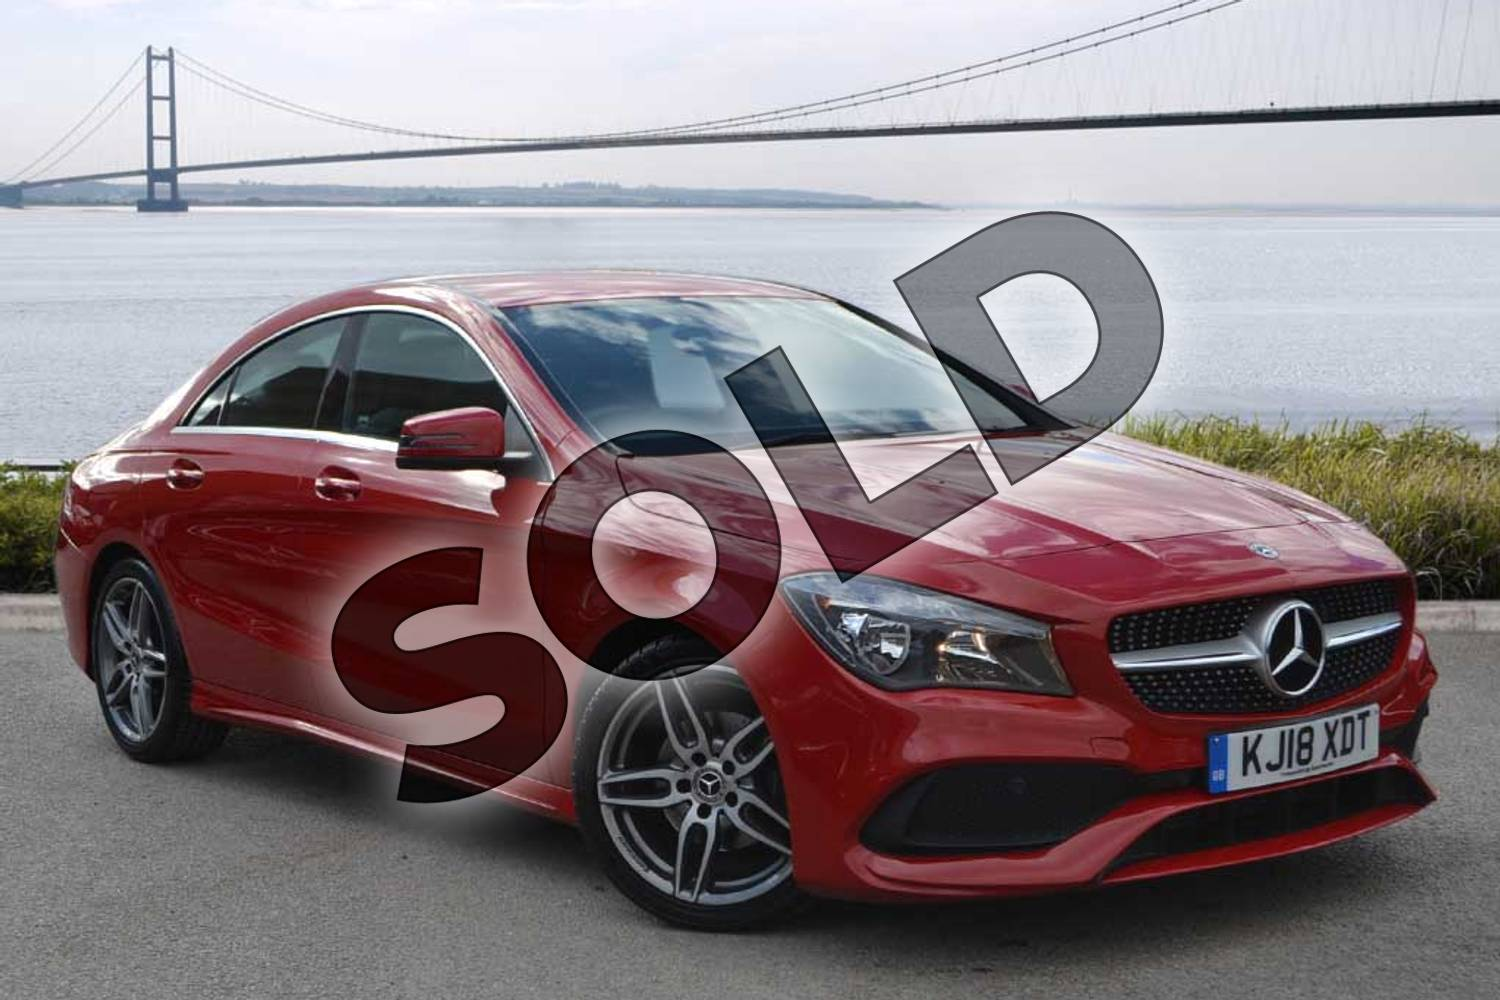 2018 Mercedes-Benz CLA Coupe CLA 180 AMG Line 4dr Tip Auto in jupiter red at Mercedes-Benz of Hull